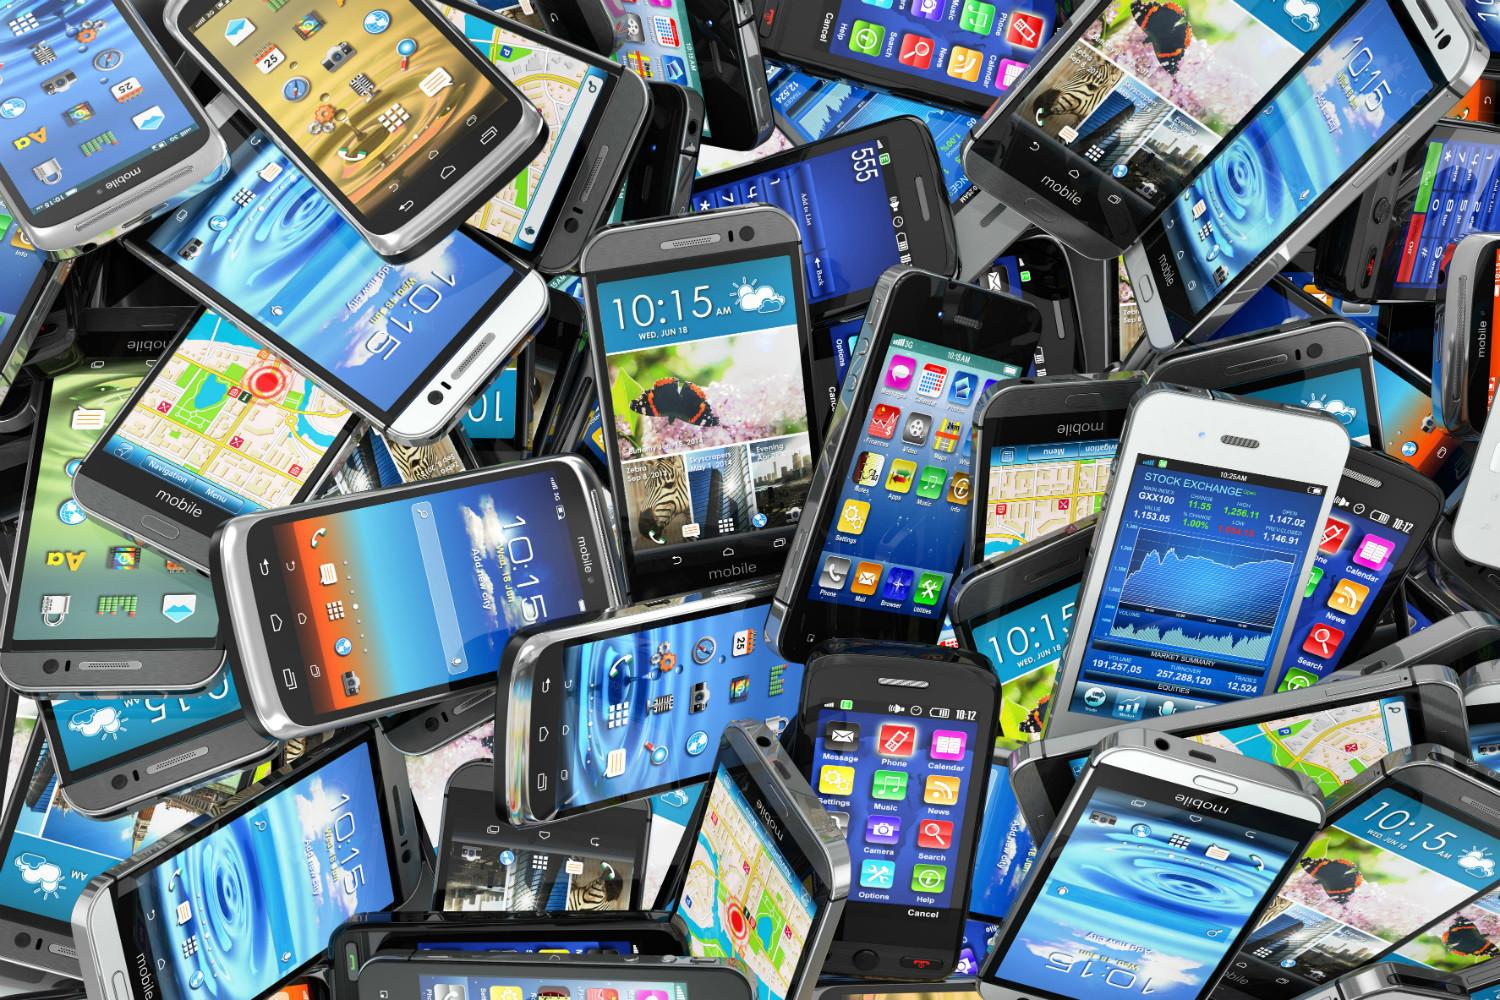 an analysis of mobile phones in modern day life Advantages and disadvantages of mobile phones in our daily lives (77956) advertisement plays a major role on tv in developed market economies despite the benefits of such information, many people are critical of the role of tv advertising.